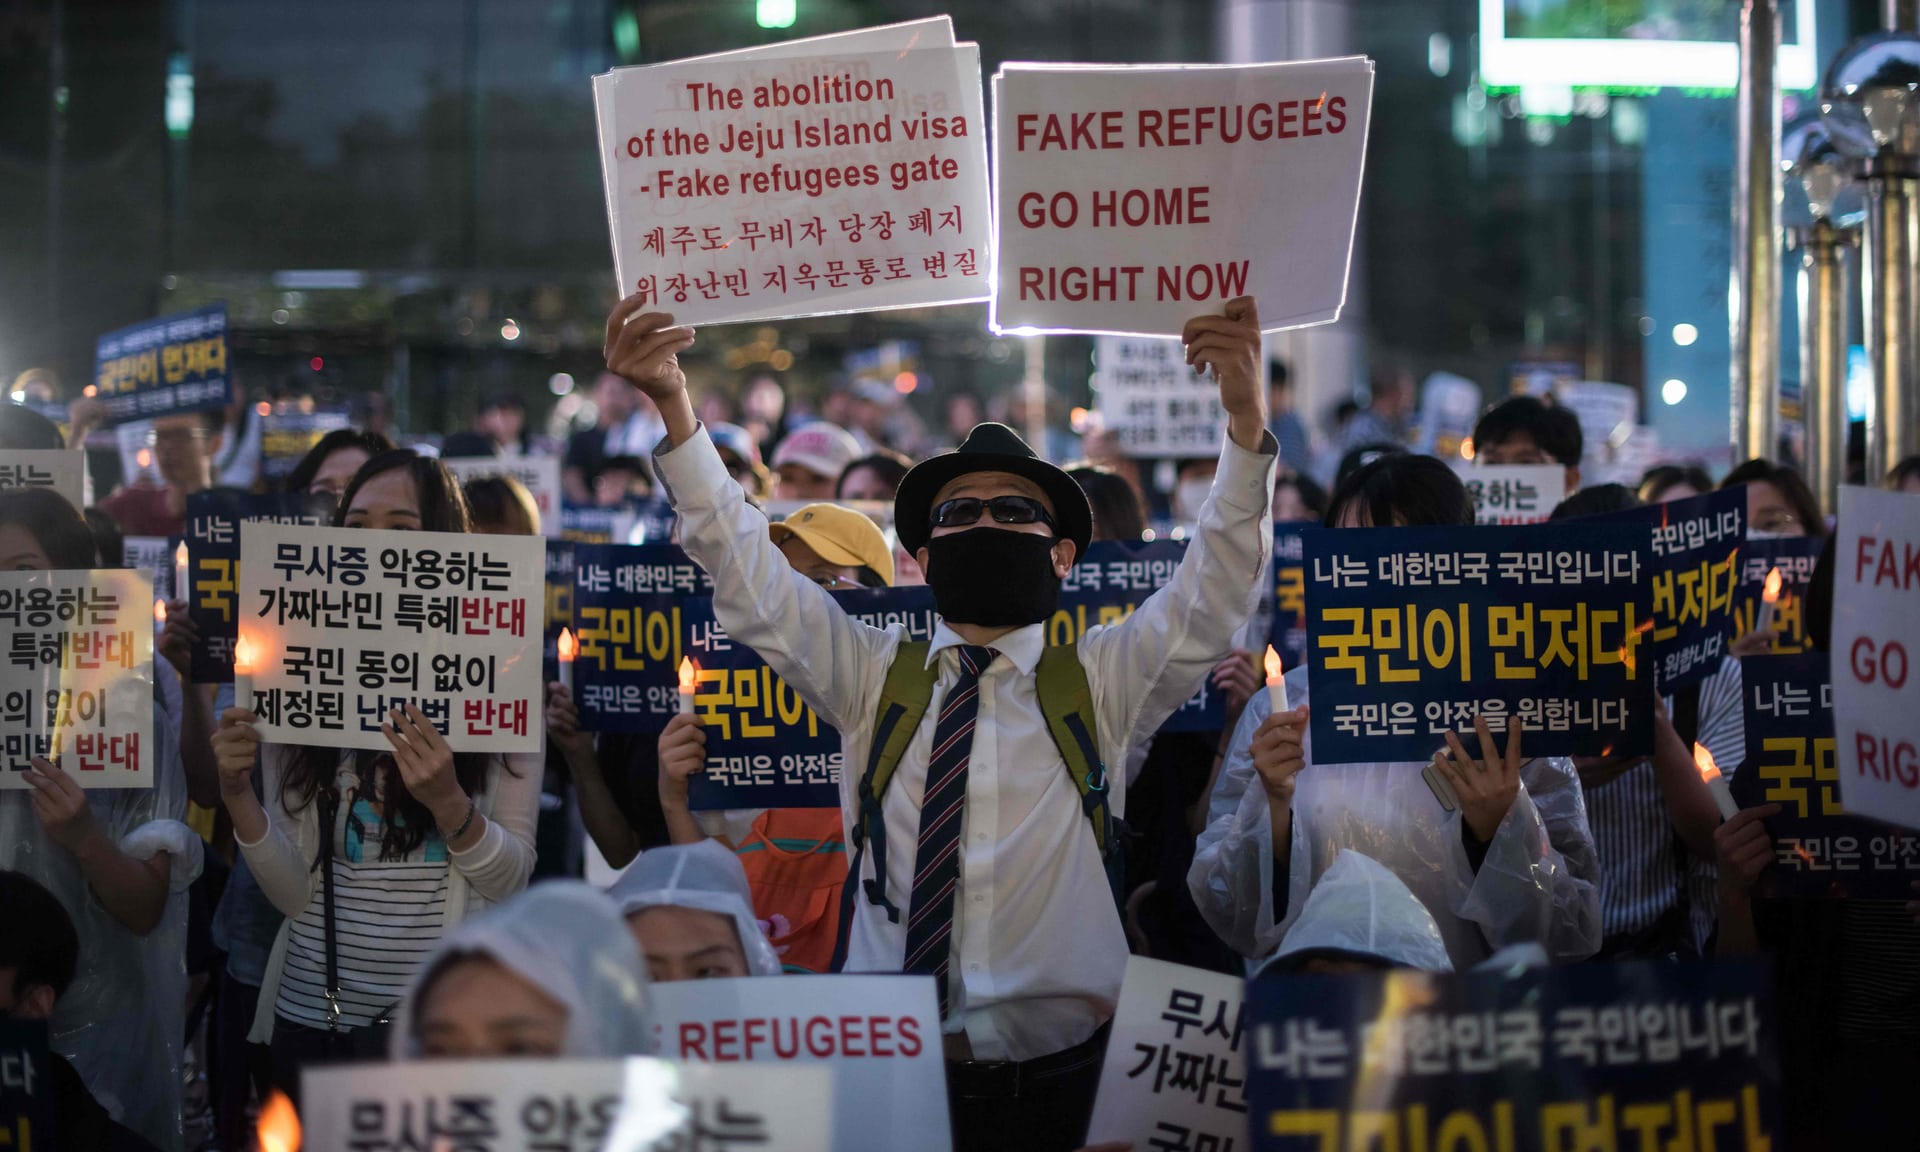 South Koreans protesting against the refugees. Taken from News article by the South China Morning Post -    https://www.scmp.com/magazines/post-magazine/long-reads/article/2155163/influx-refugees-yemen-divides-south-korean-resort